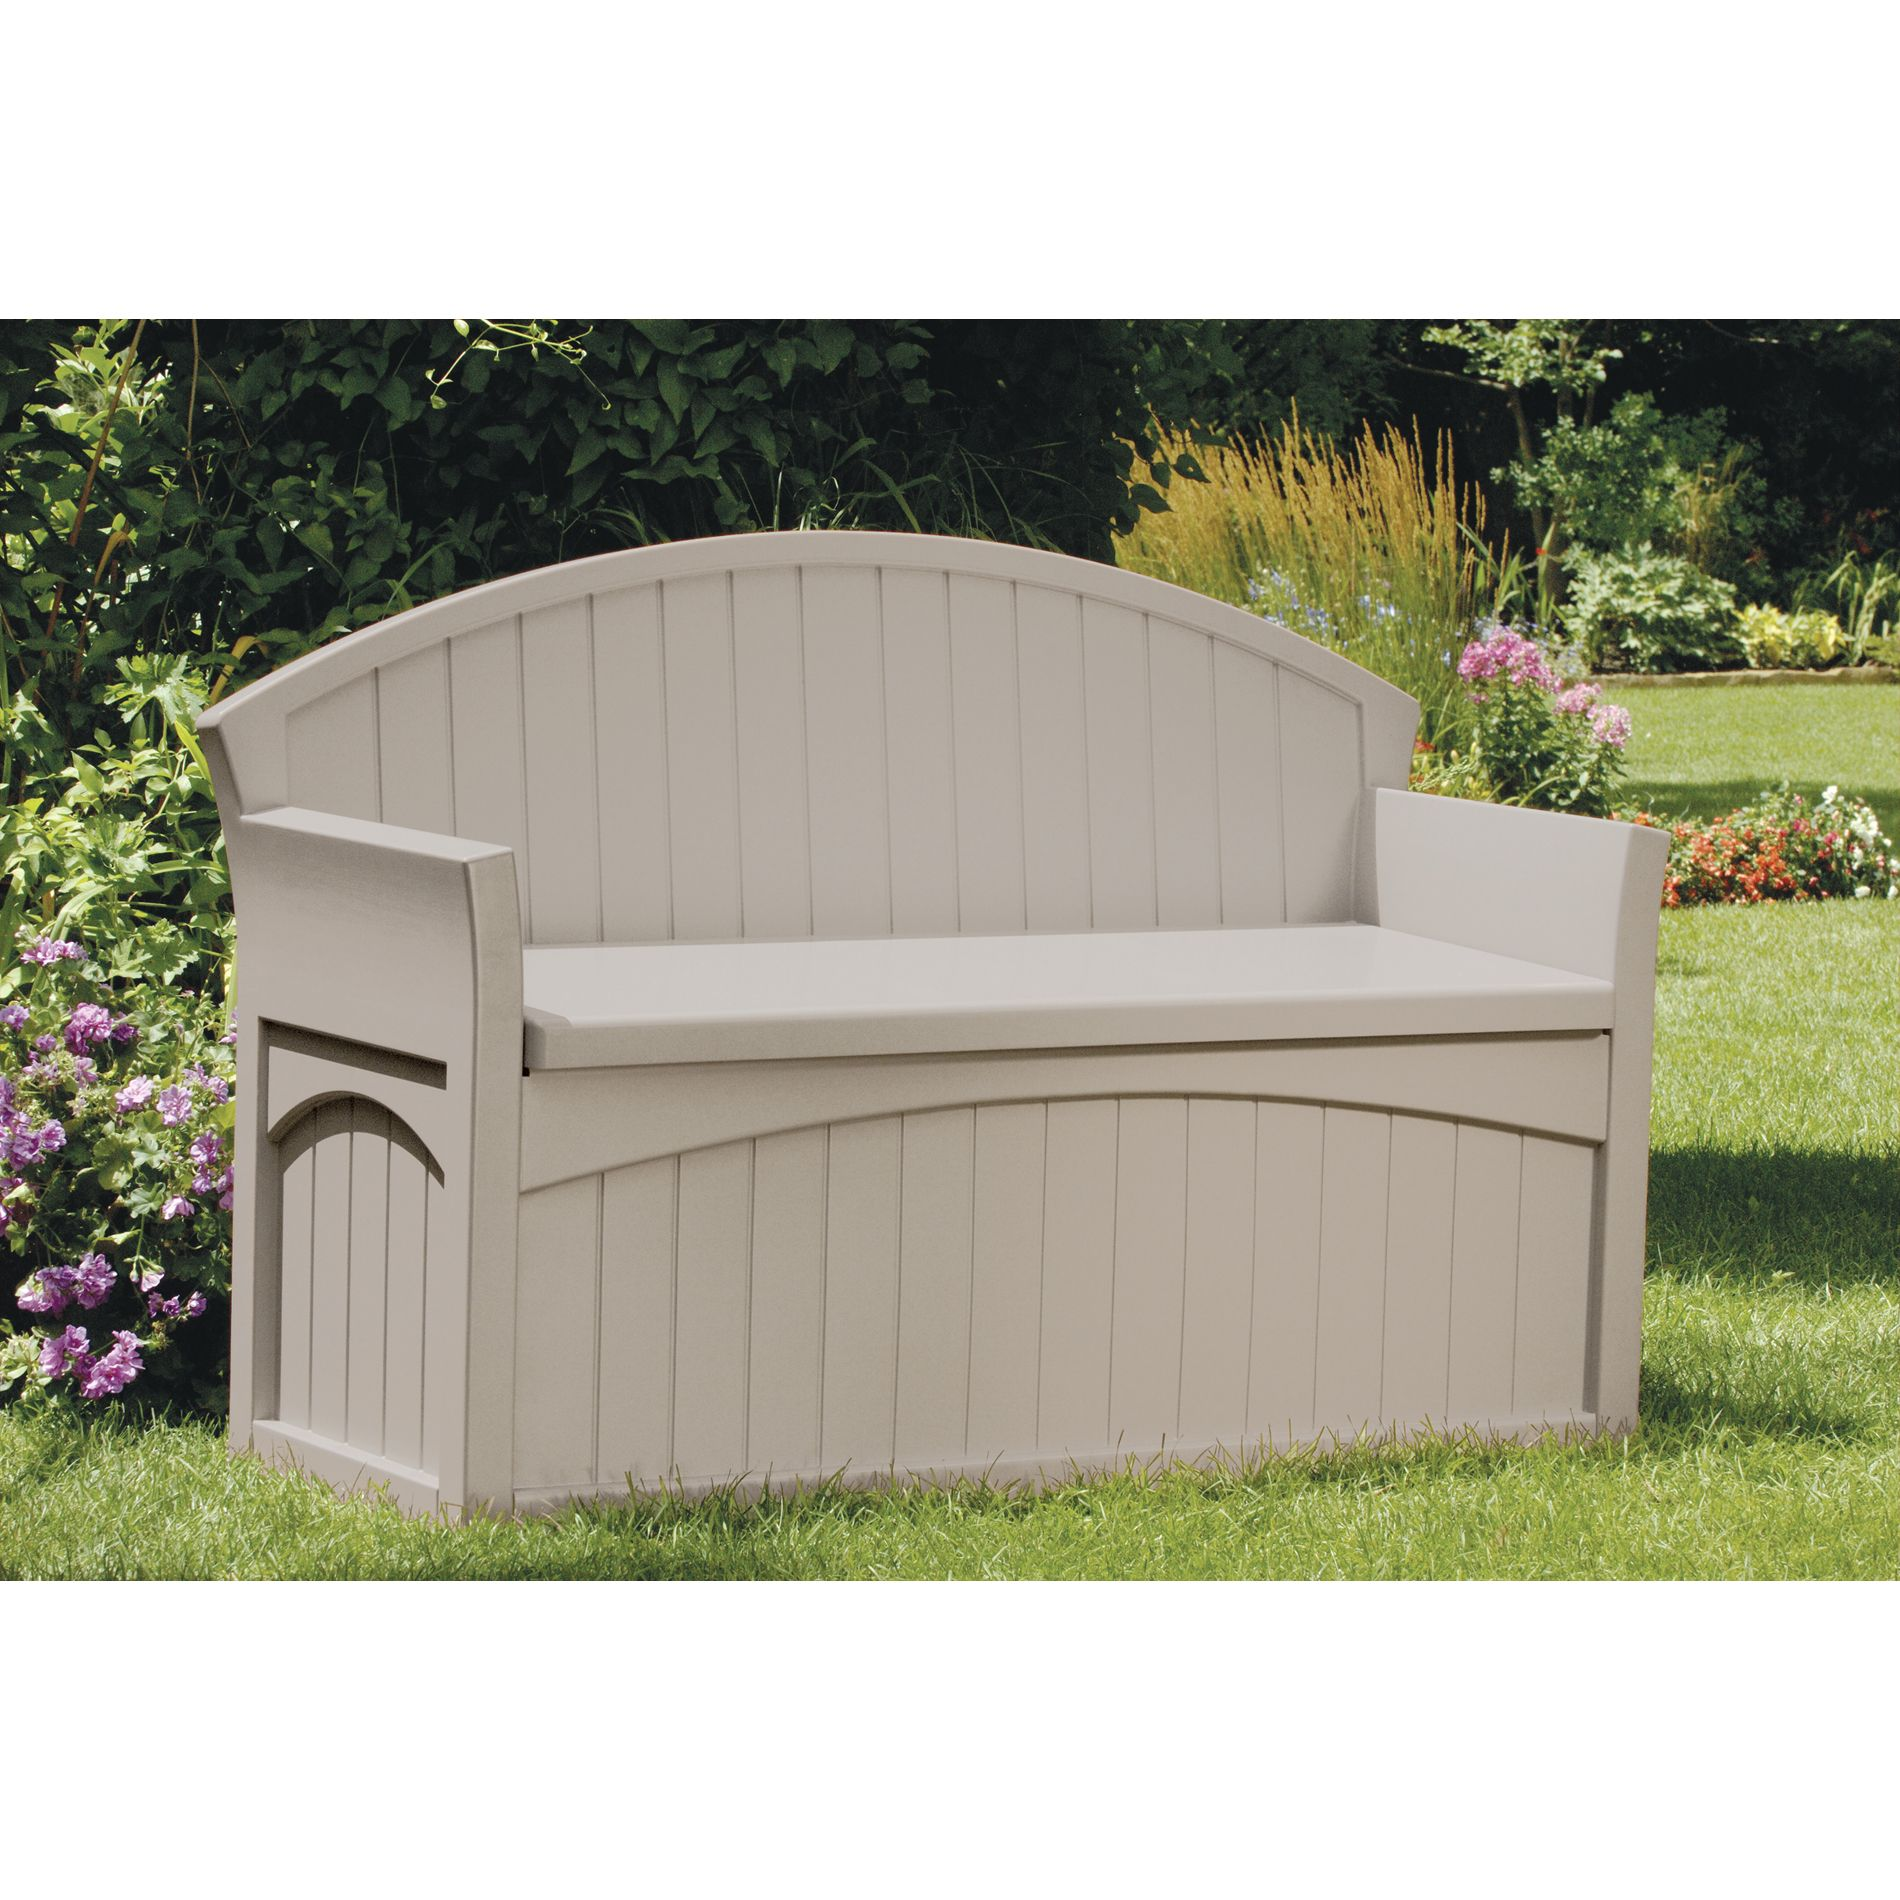 Amazing Patio Bench w Storage: Organize the Outdoors with Sears suncast patio storage bench